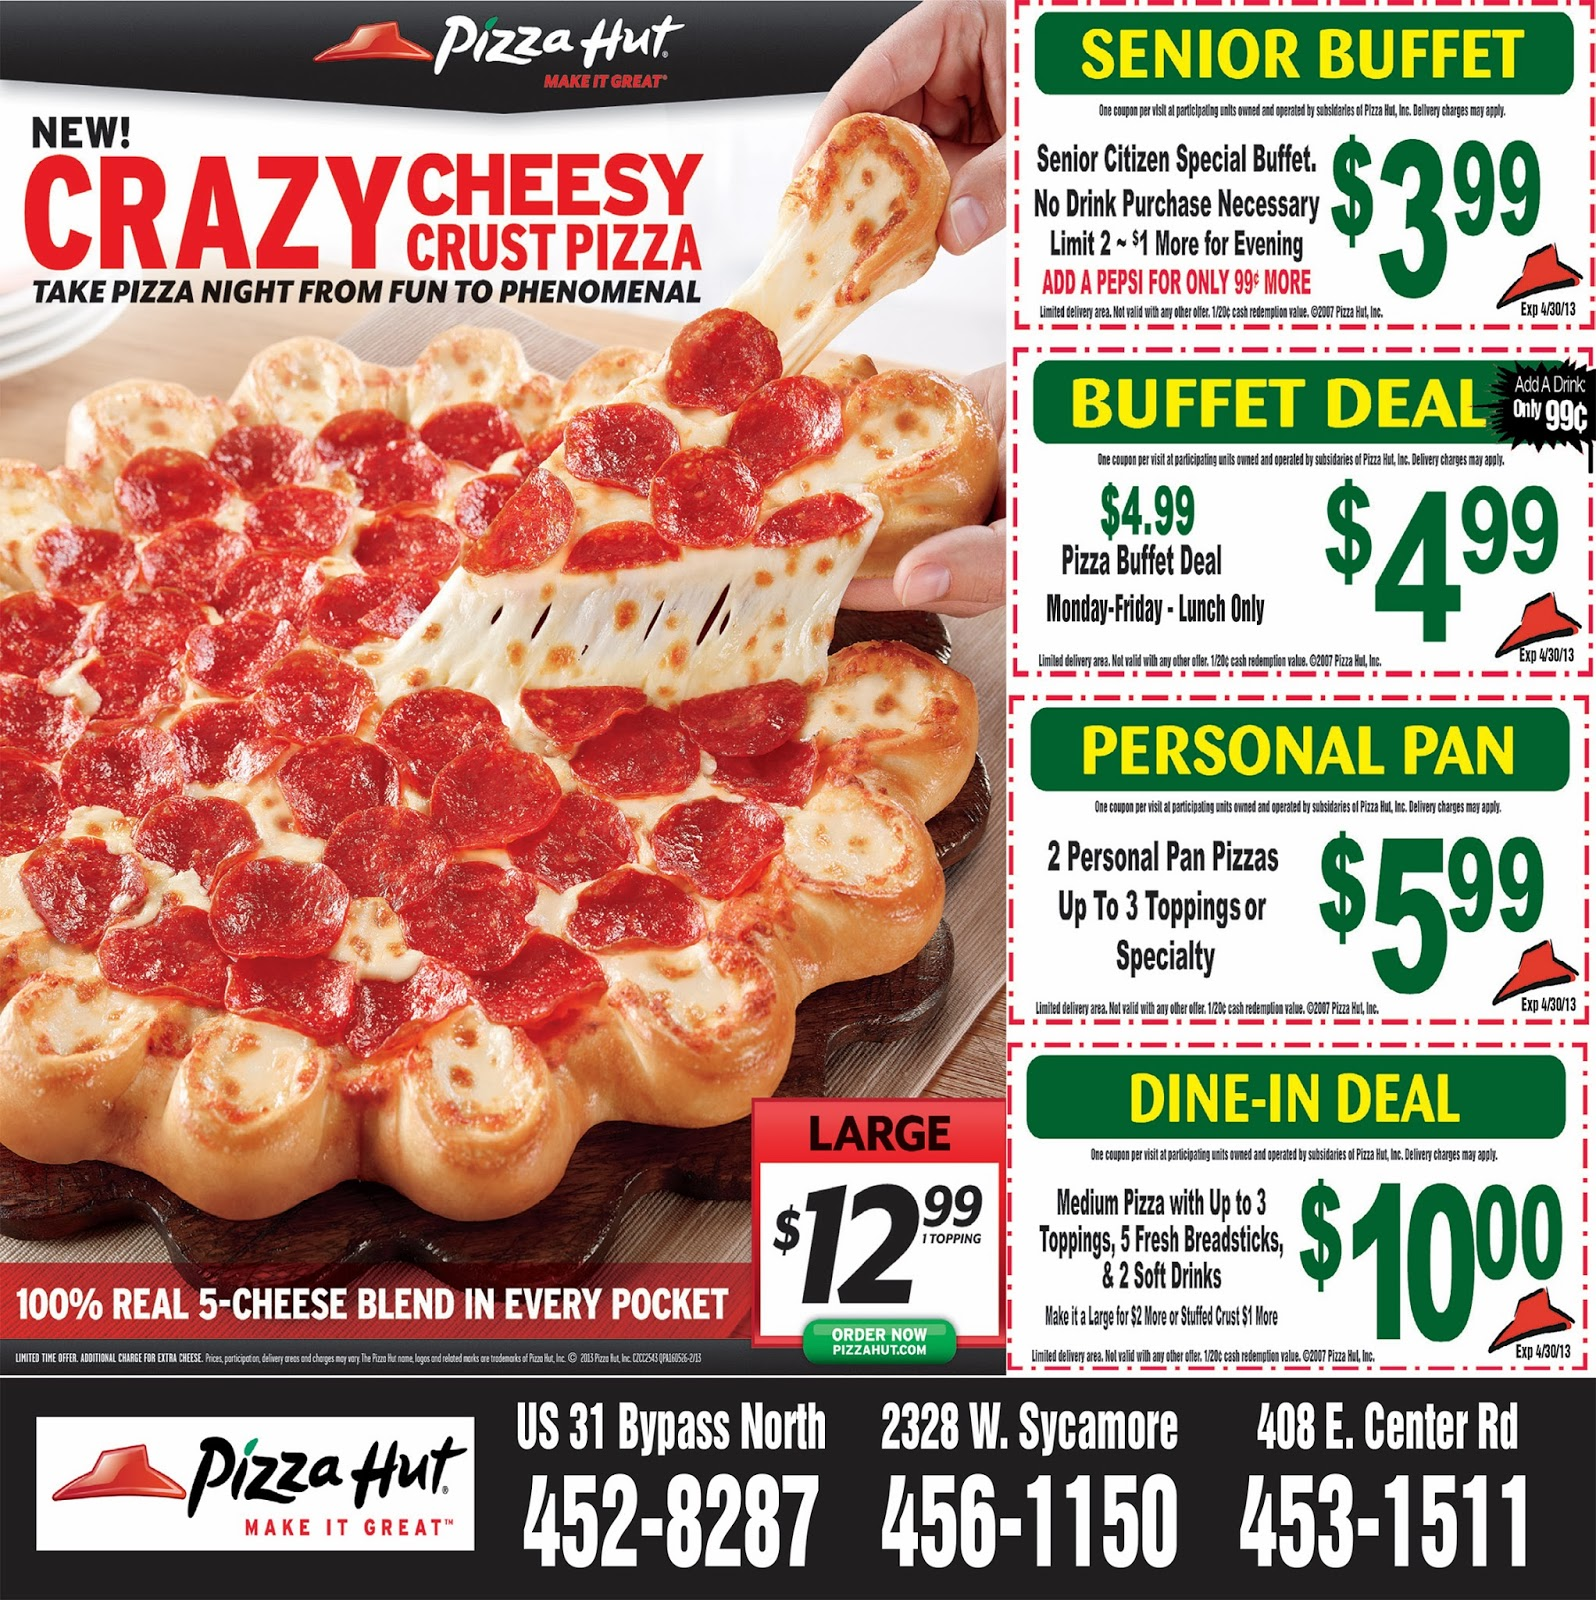 Pizza Coupons & Restaurant Menus. All the latest pizza restaurants coupons and menus are now available on one website. Right Here. Visit us and get up to 50% off Pizza Hut .